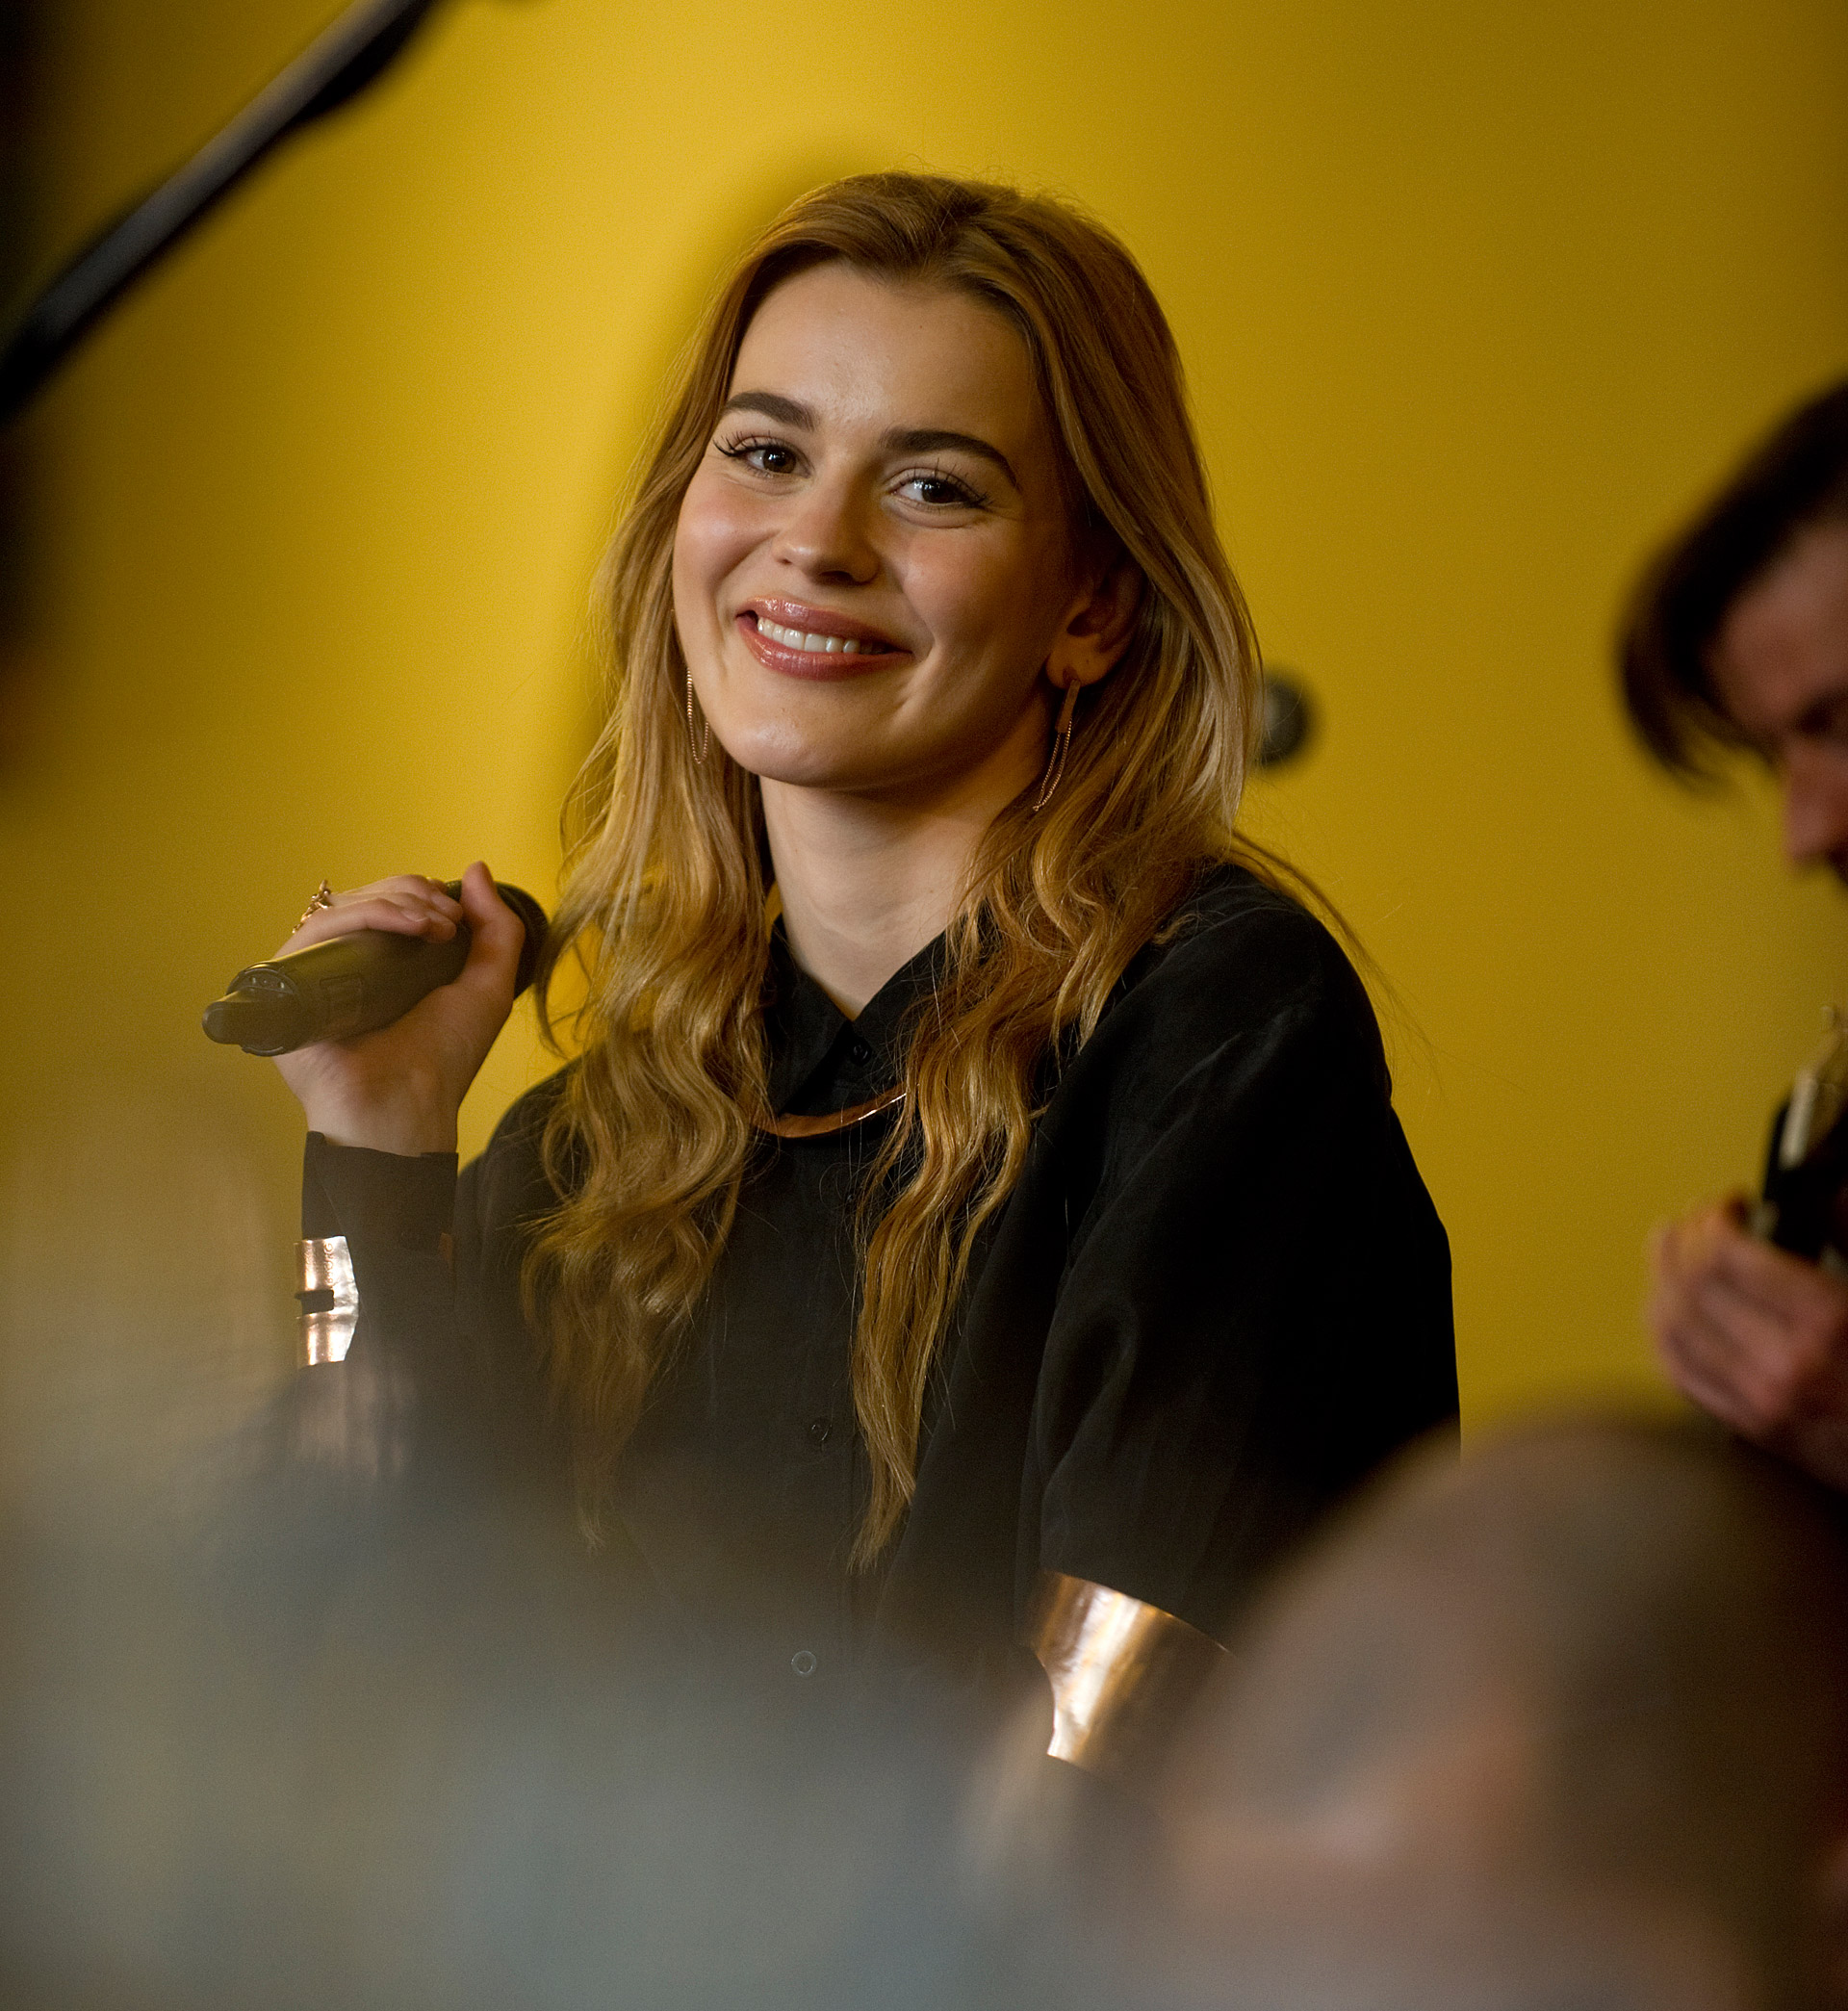 Danish singer and winner of the Melody Grand Prix Emmelie de Forest at a concert in the City Hall in Copenhagen